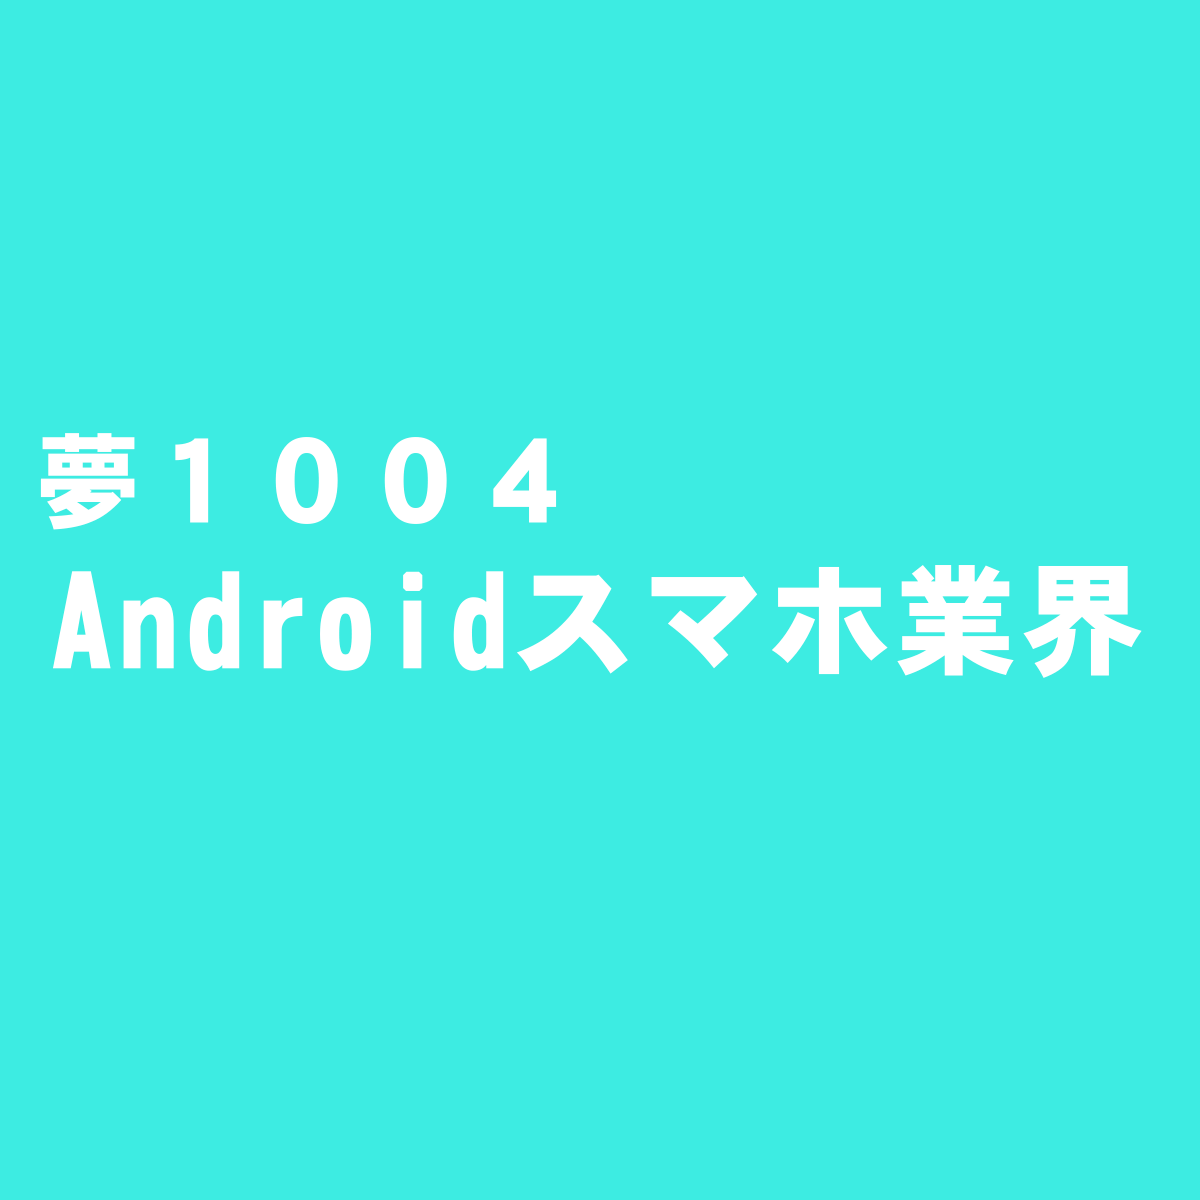 Androidスマホ業界。